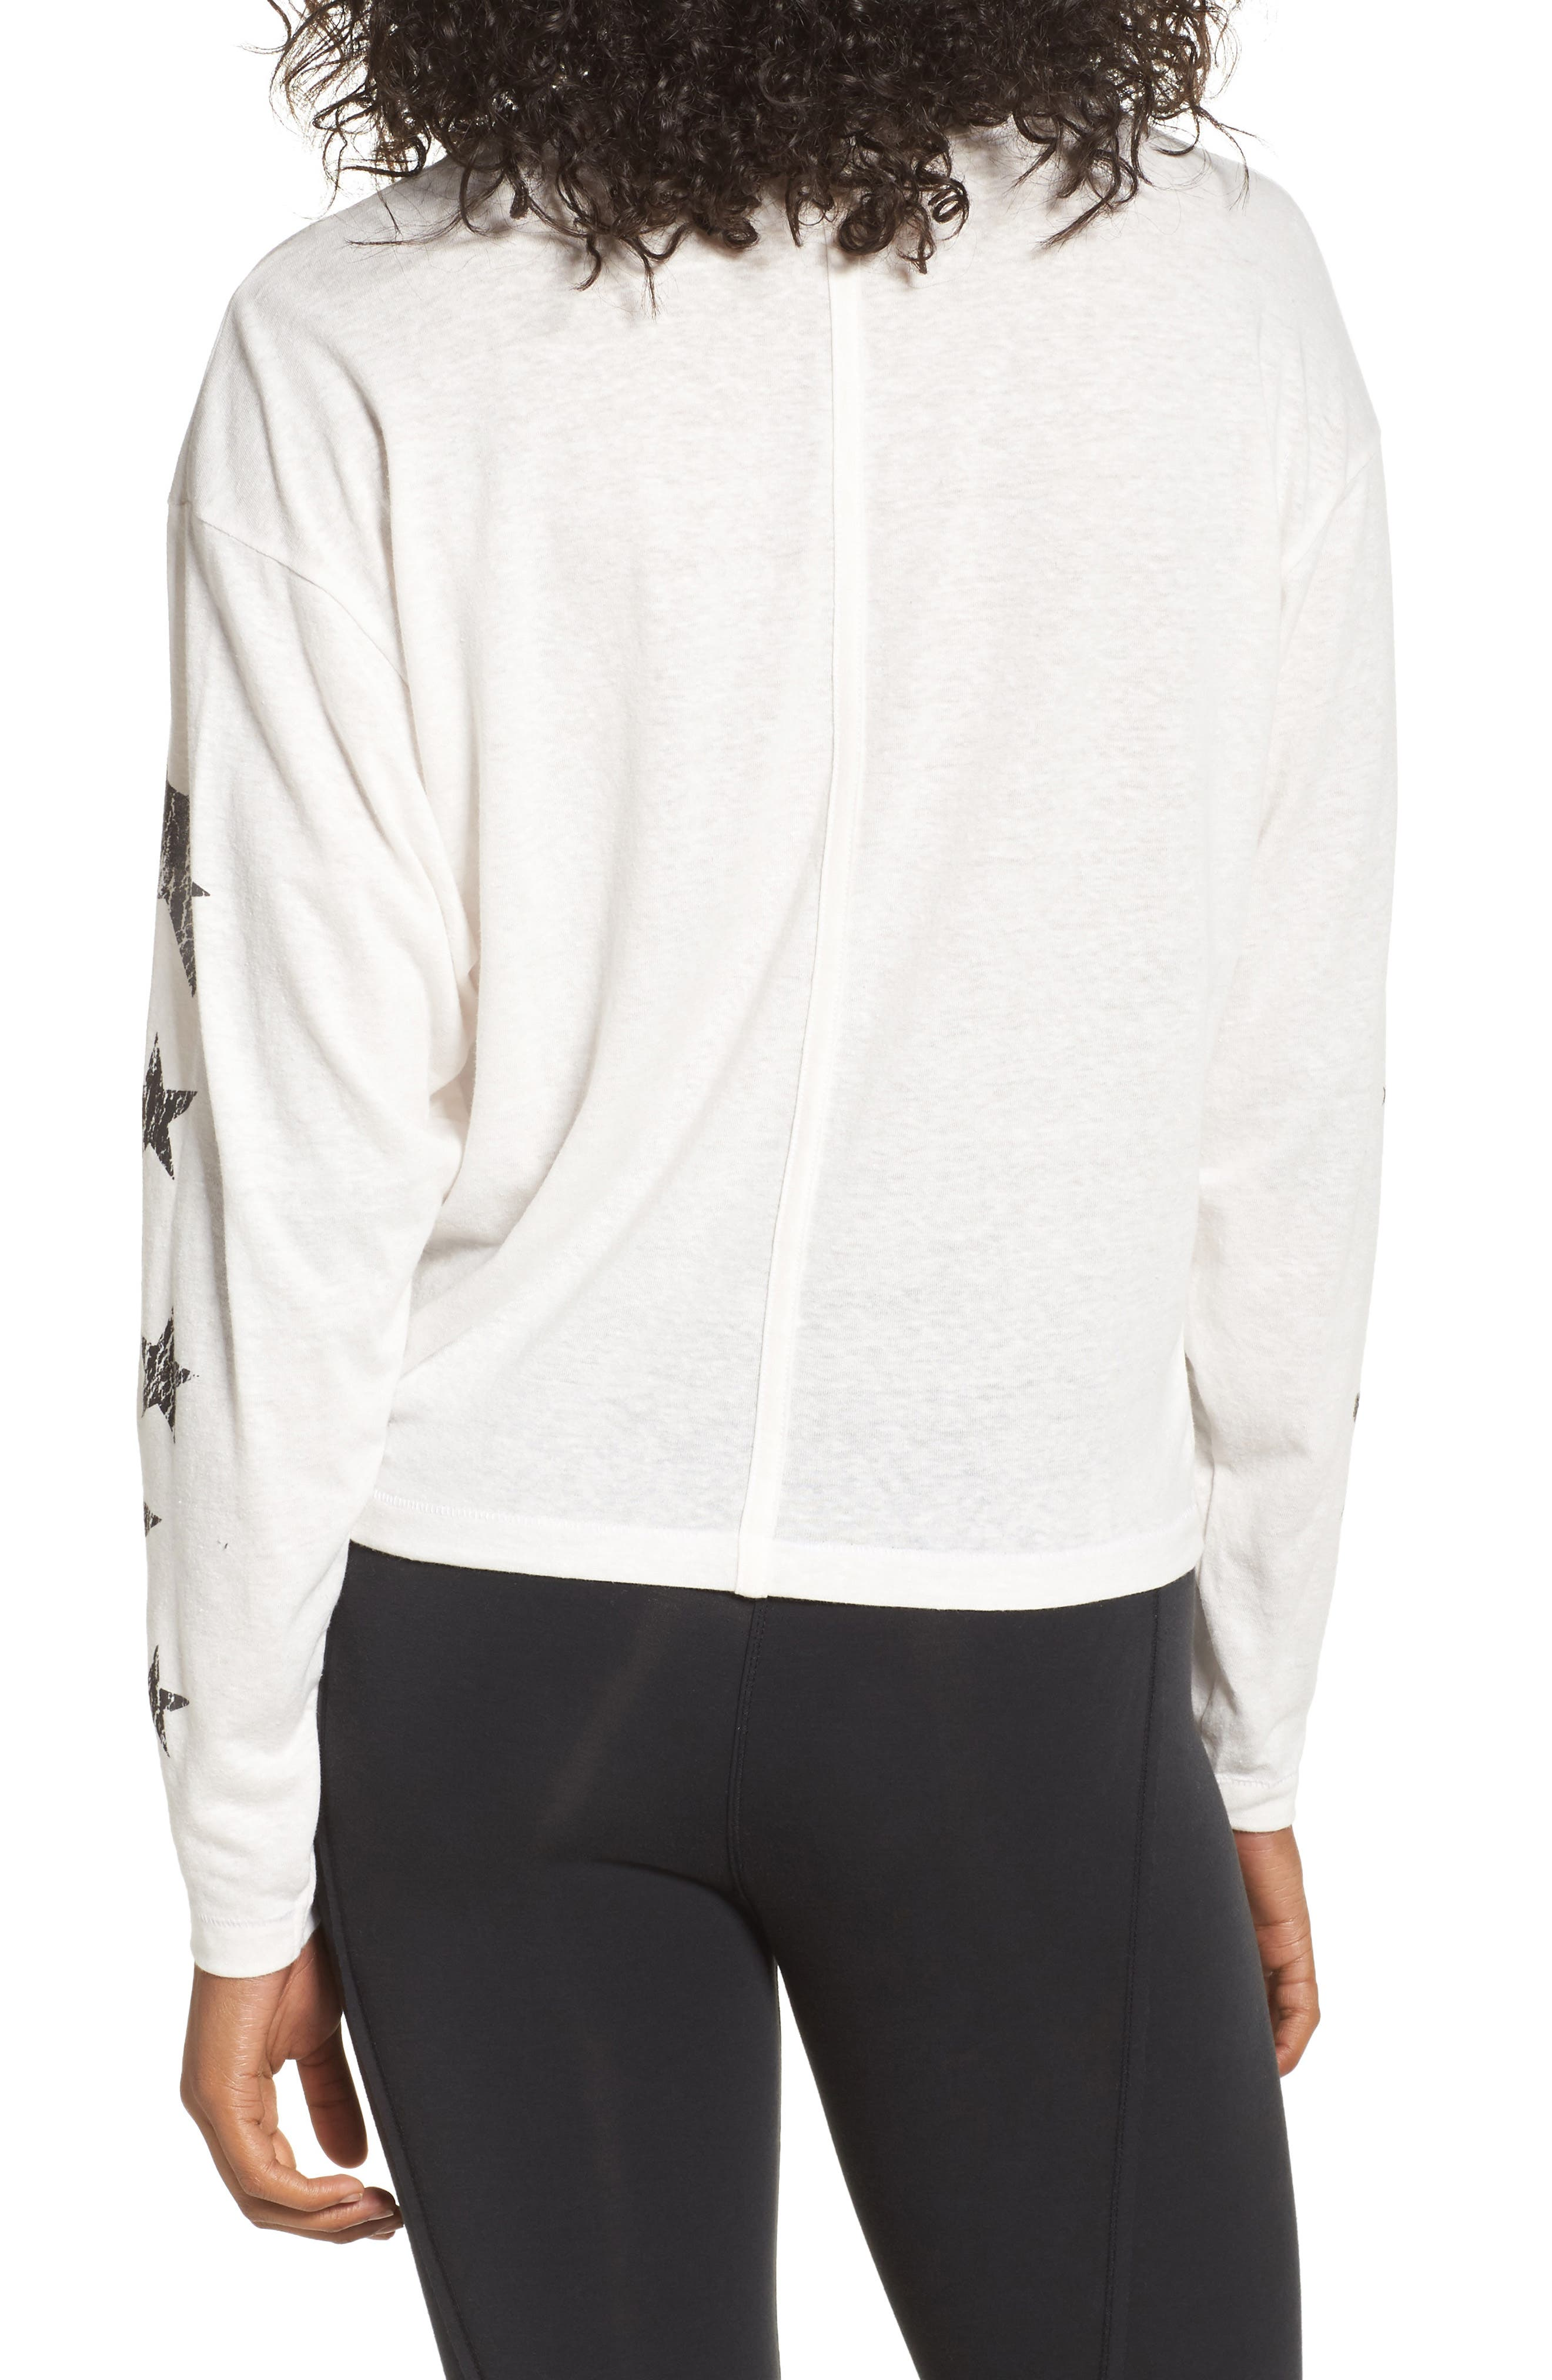 Free People Melrose Star Graphic Top,                             Alternate thumbnail 6, color,